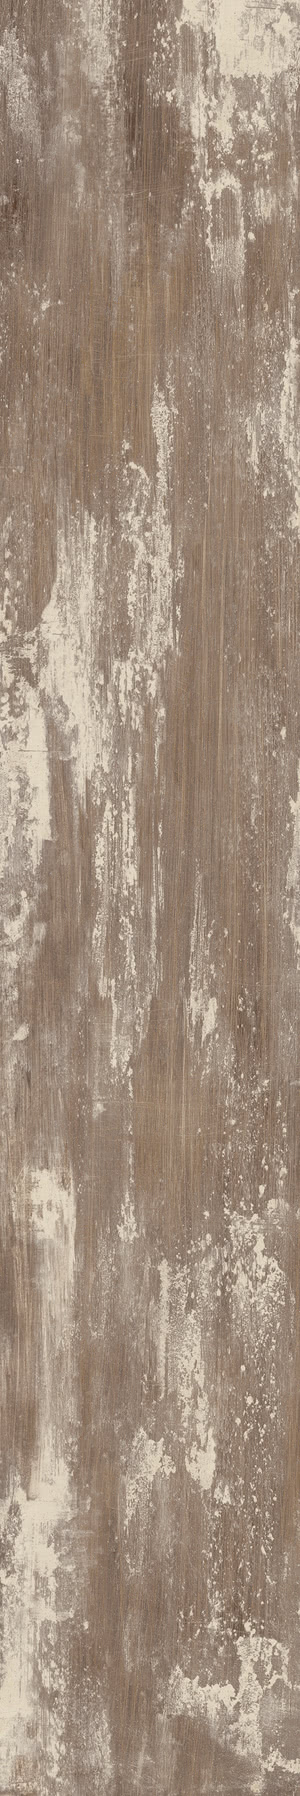 Ceramica Del Conca AR Artelegno AR 9 Noce Rett. 20x120 , Bathroom, Living room, Public spaces, Wood effect effect, Glazed porcelain stoneware, wall & floor, Matte surface, Semi-polished surface, non-rectified edge, Rectified edge, Shade variation V4